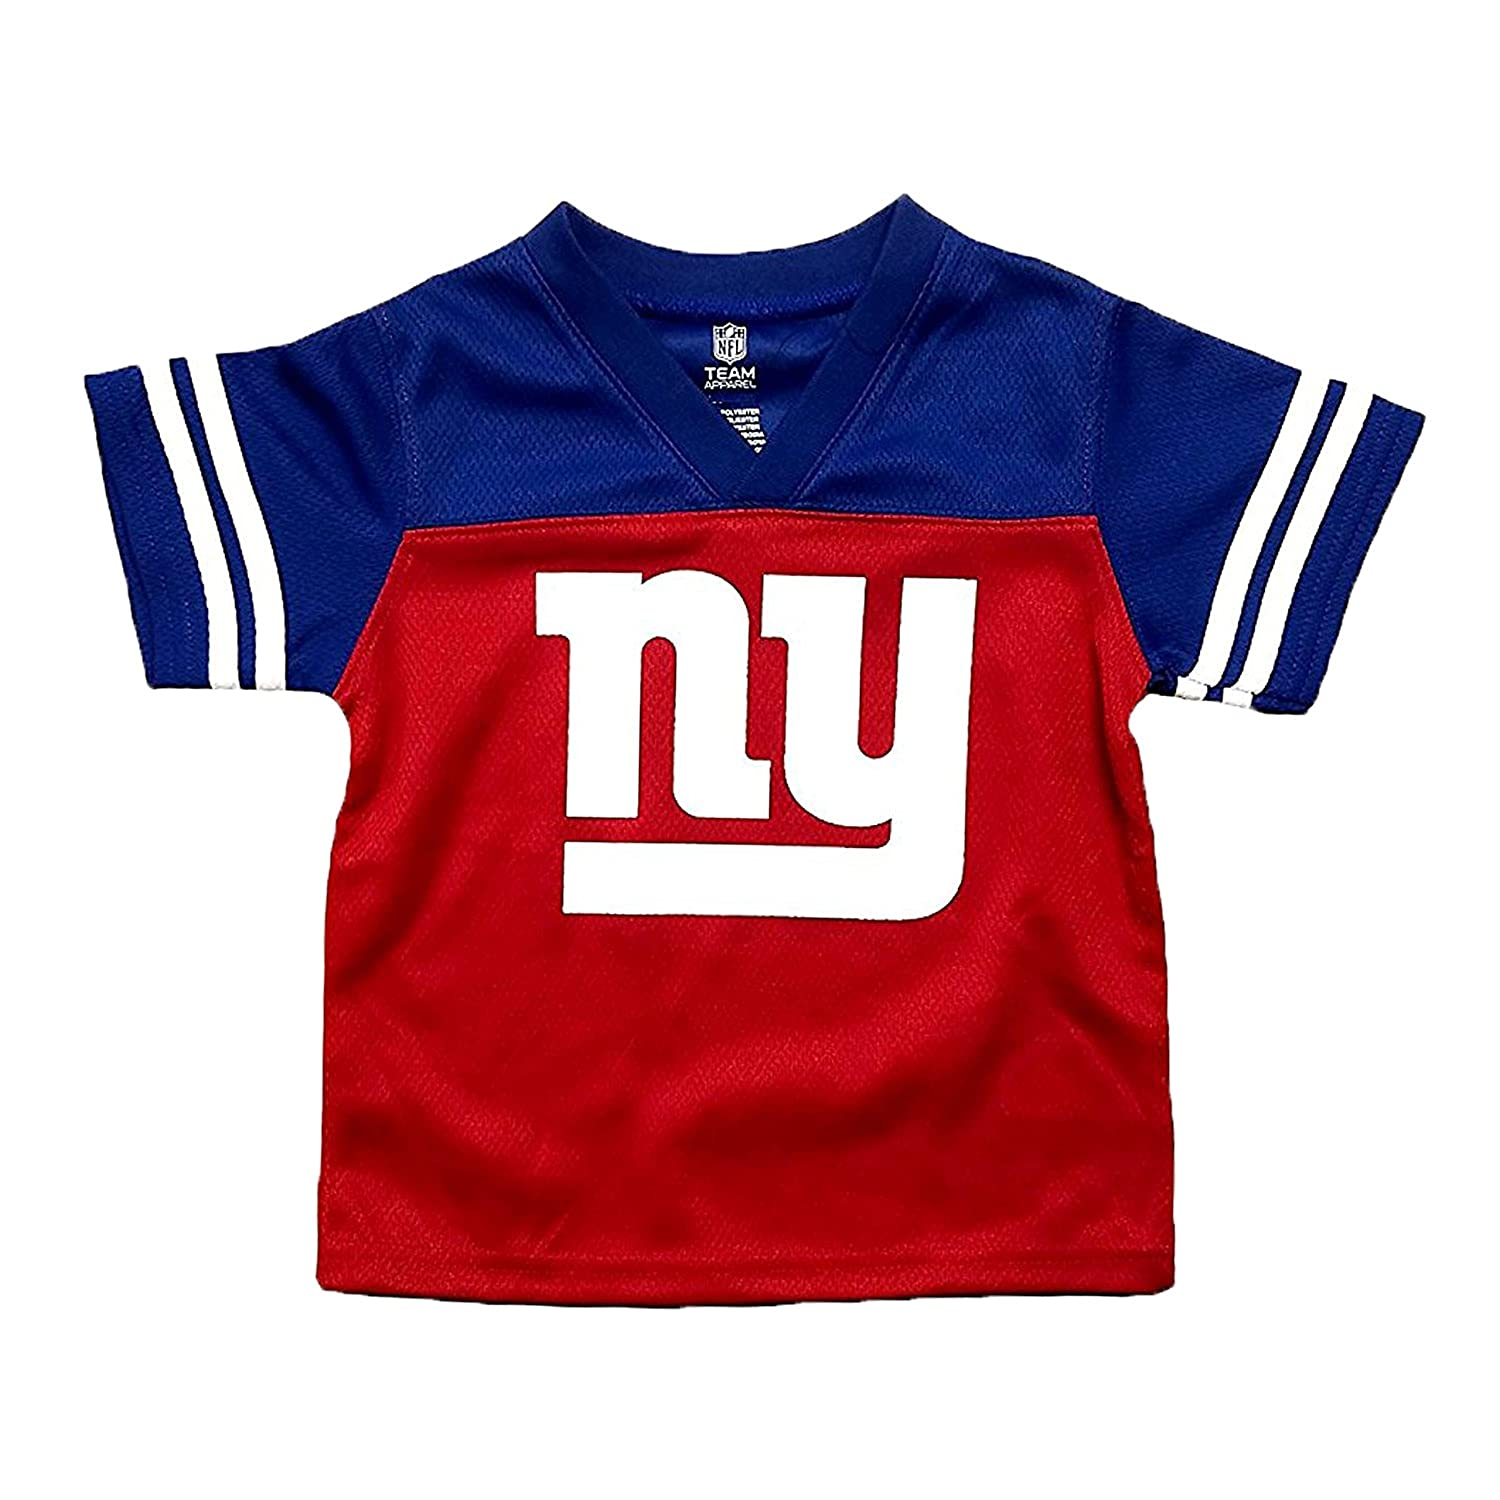 the best attitude 5b255 0d56e Amazon.com: Outerstuff New York Giants Red Youth Team ...